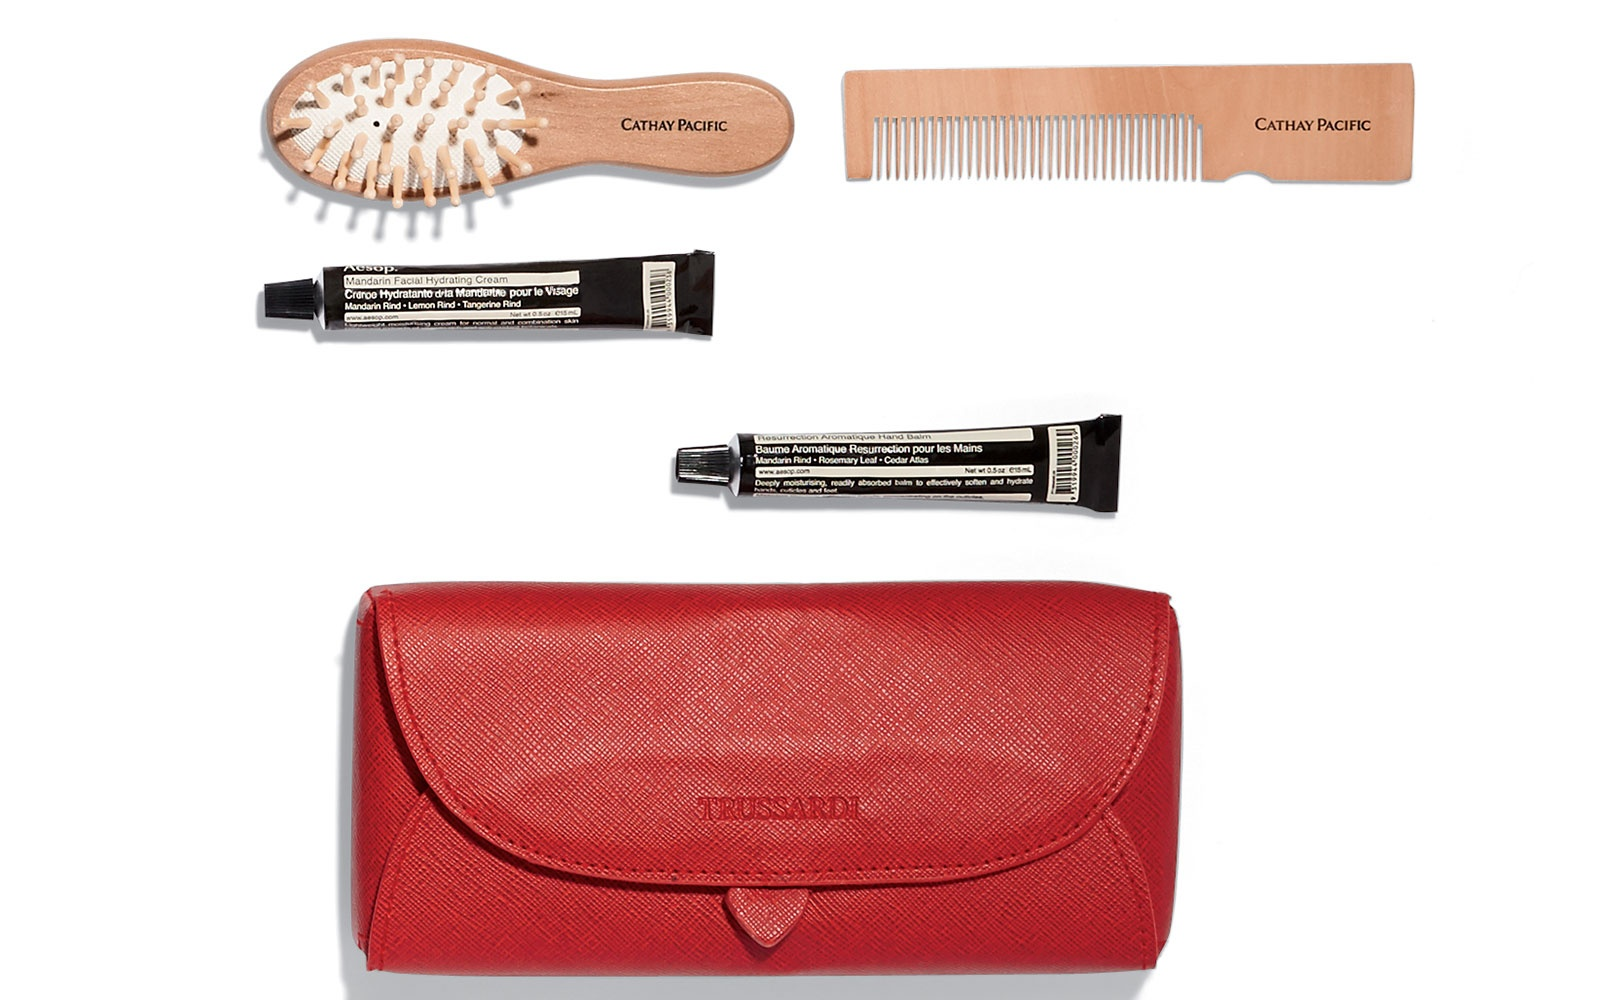 Cathay Pacific: First Class Female Travel Kit